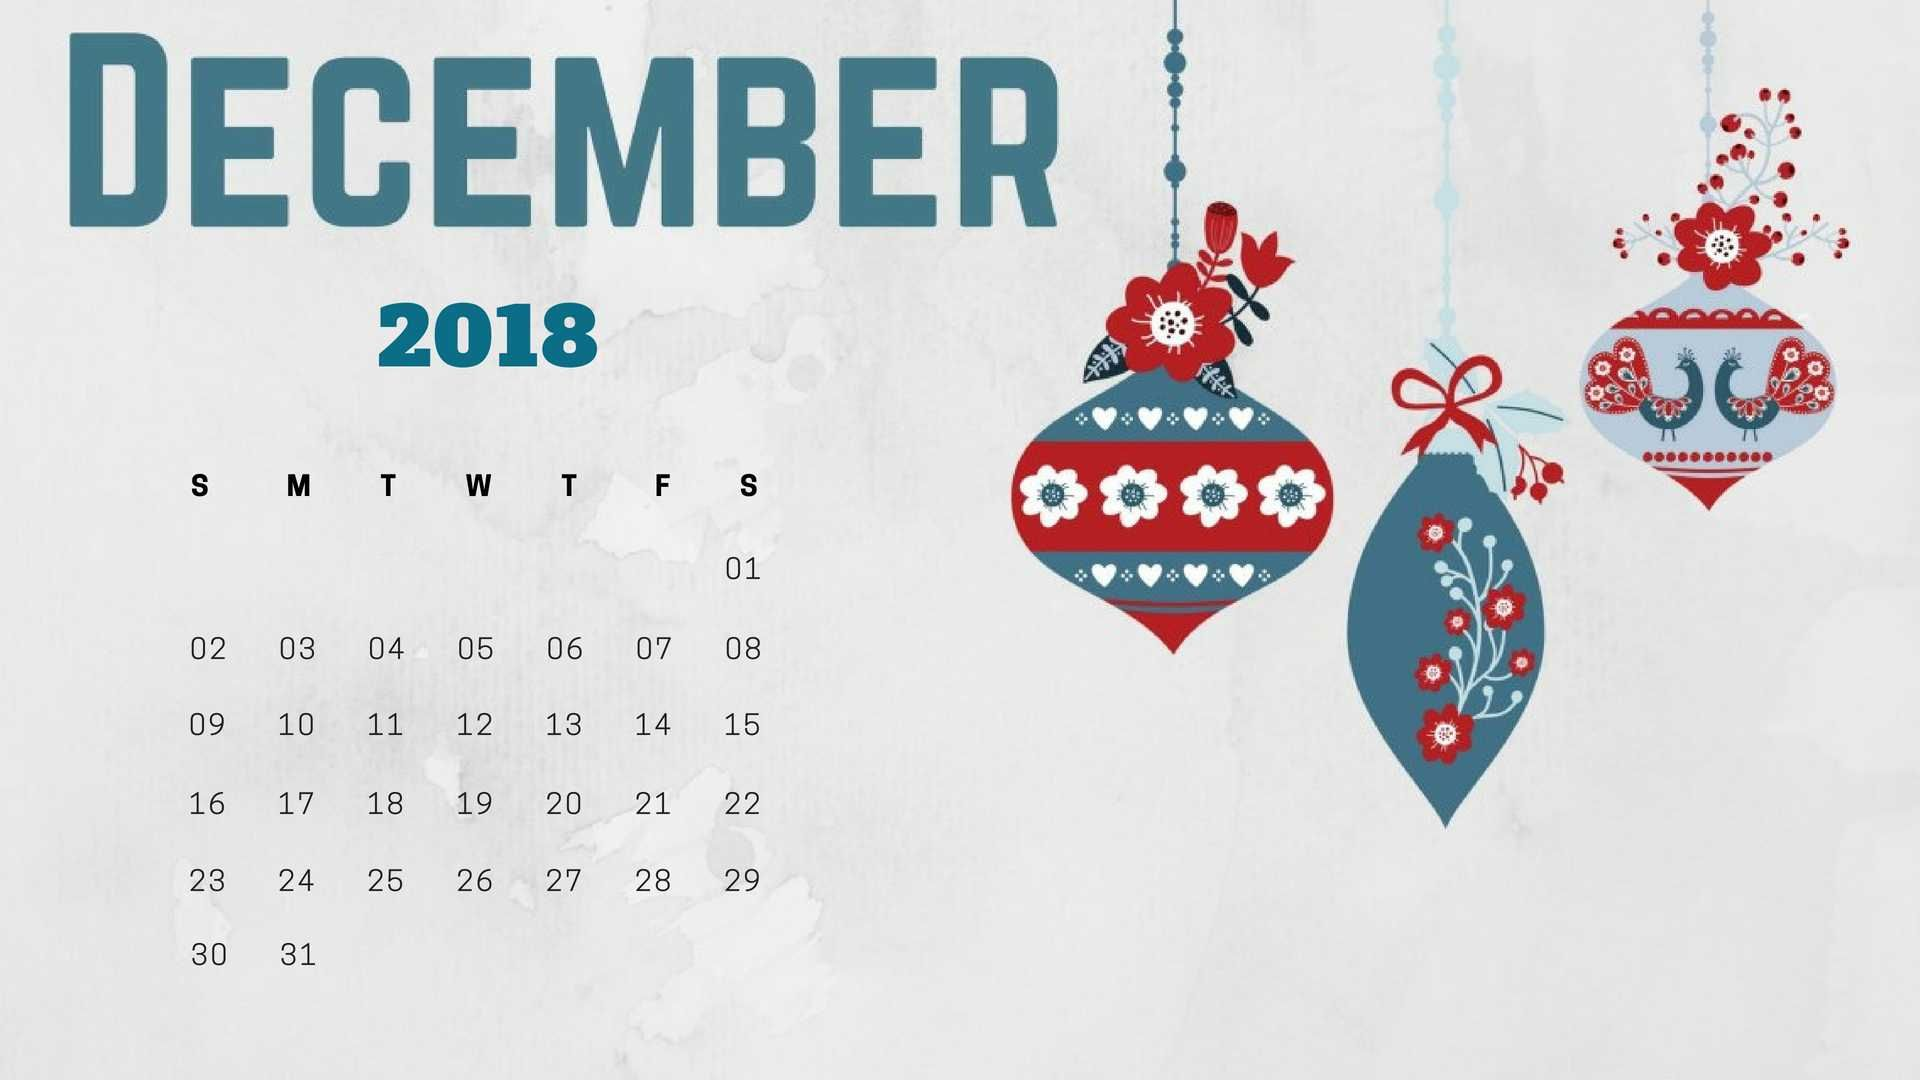 december 2018 calendar wallpaper for desktop background laptop and